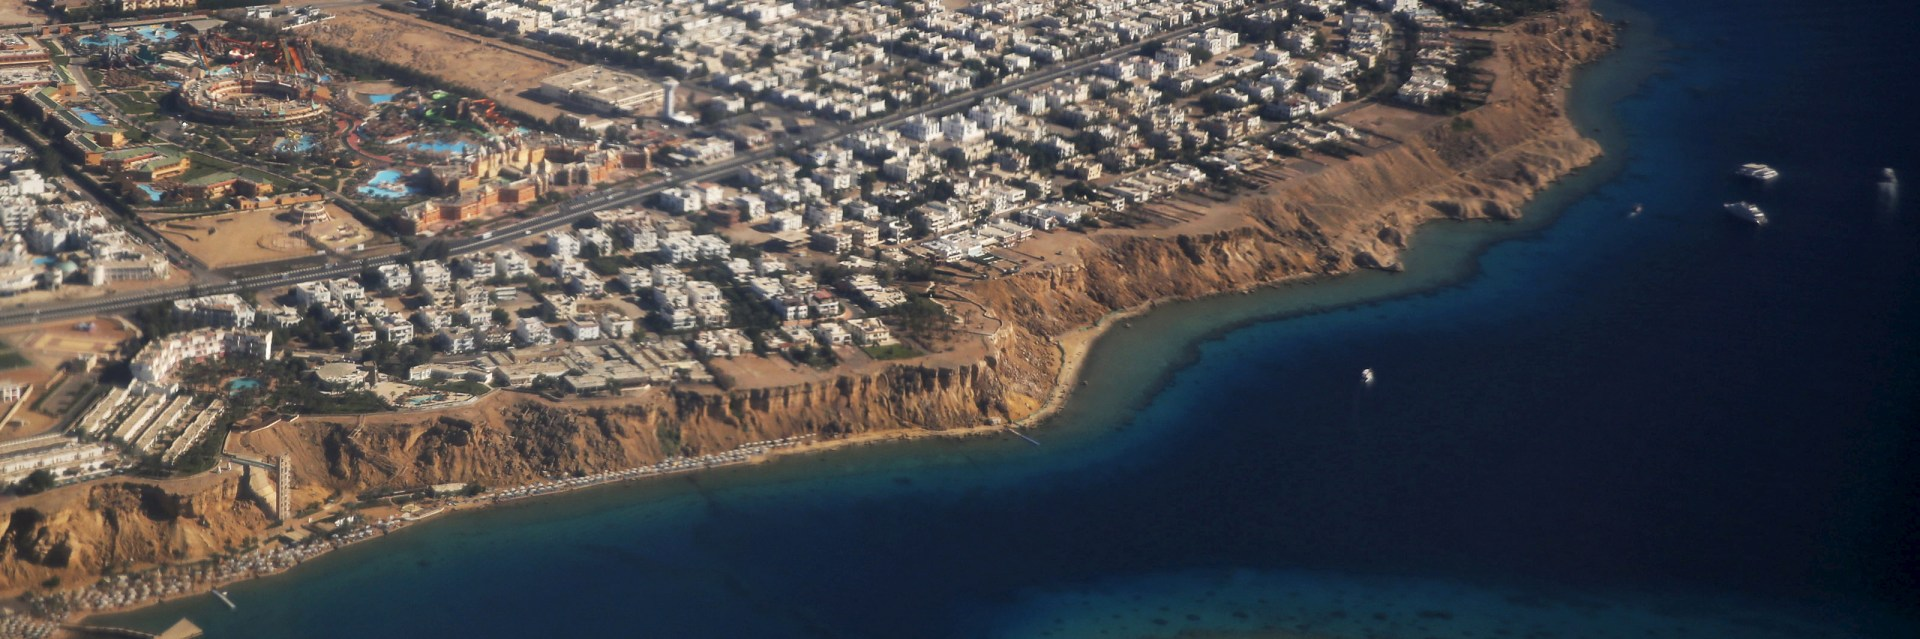 An aerial view of part of the Red Sea coast, with hotels and resorts in Sharm el-Sheikh, is seen through the window of an airplane, Egypt, December 7, 2015. REUTERS/Amr Abdallah Dalsh - GF10000257526